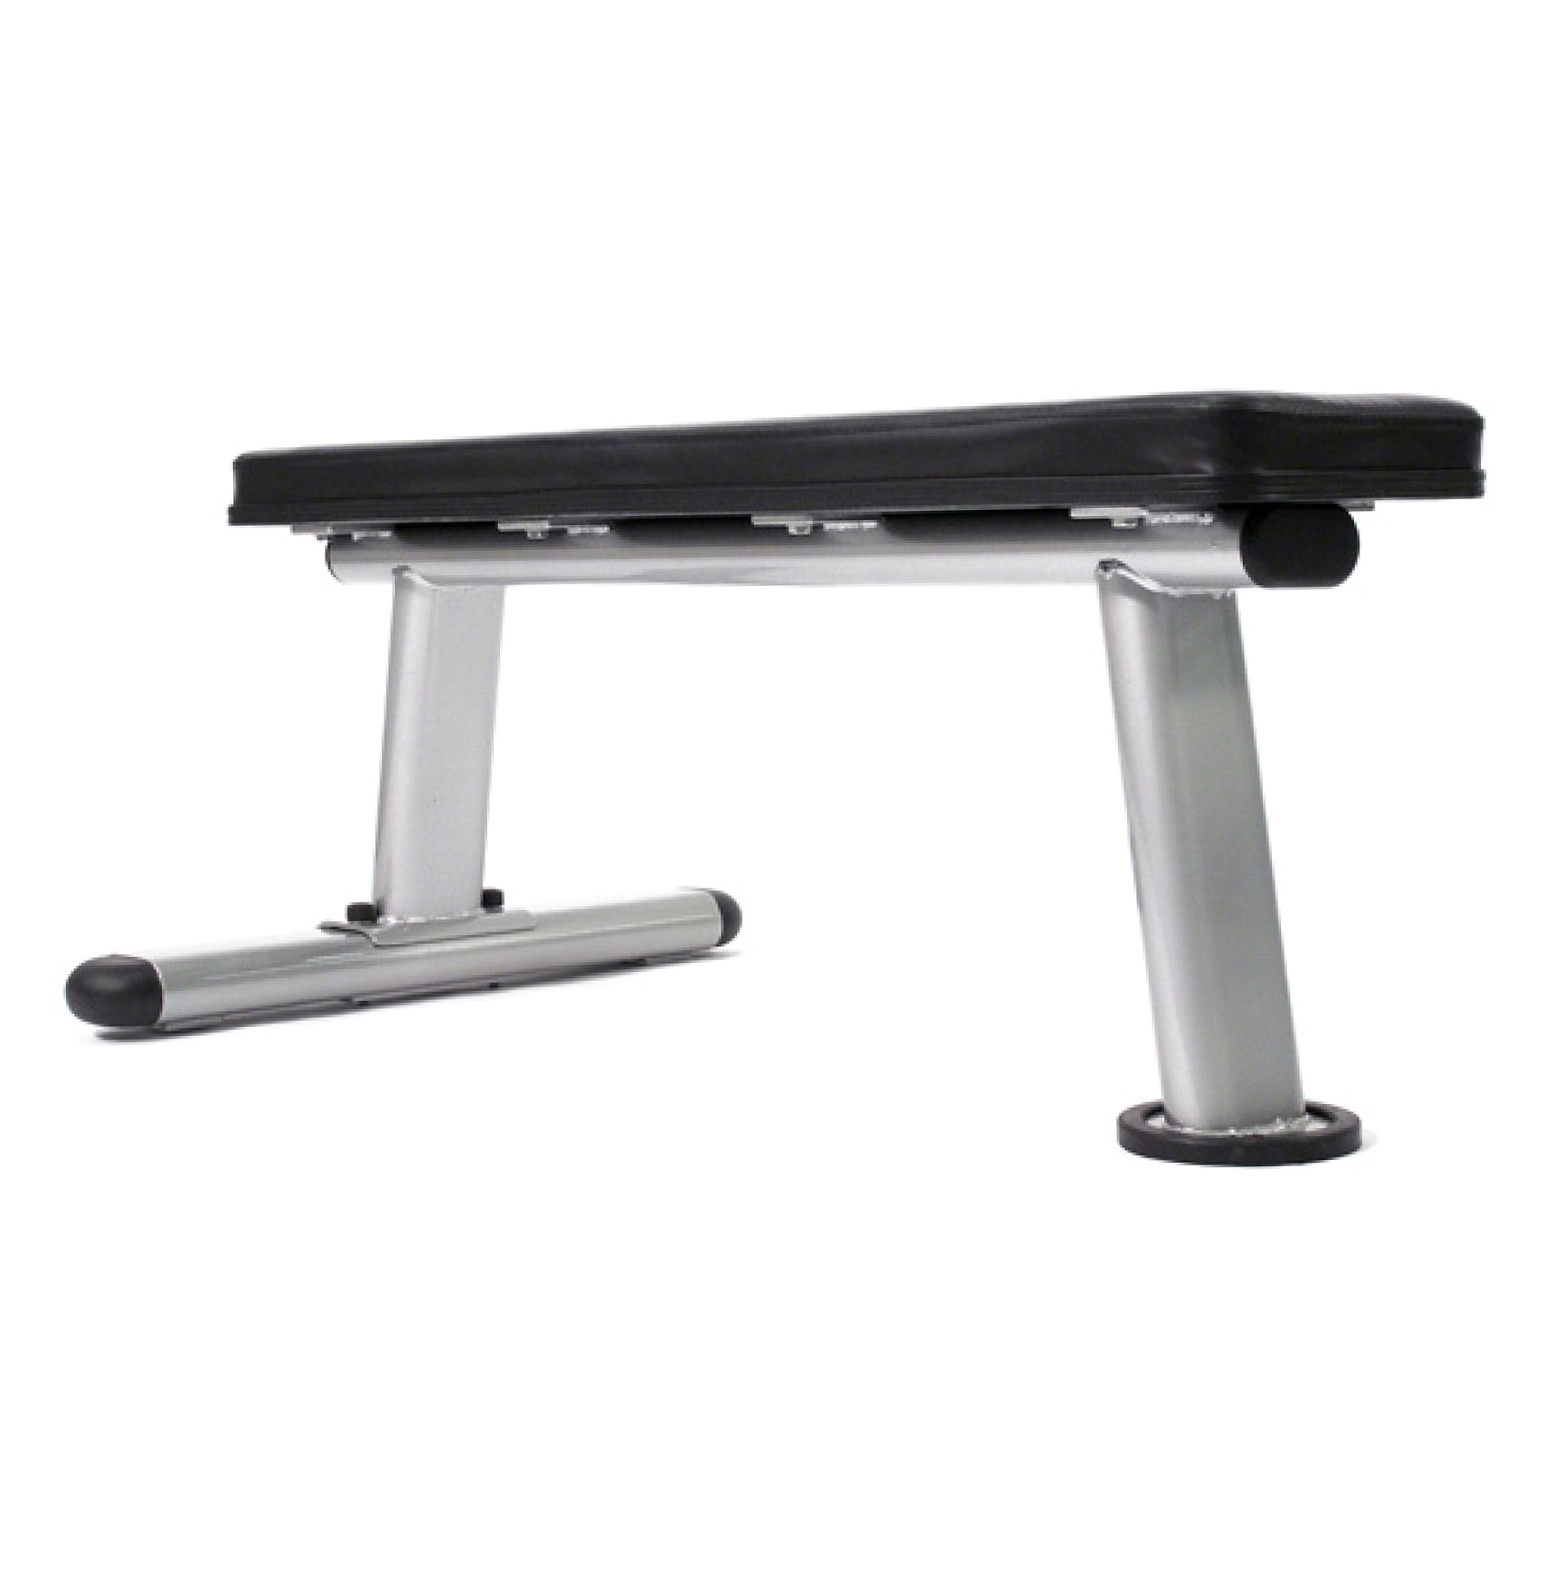 Weight Benches For Sale Uk